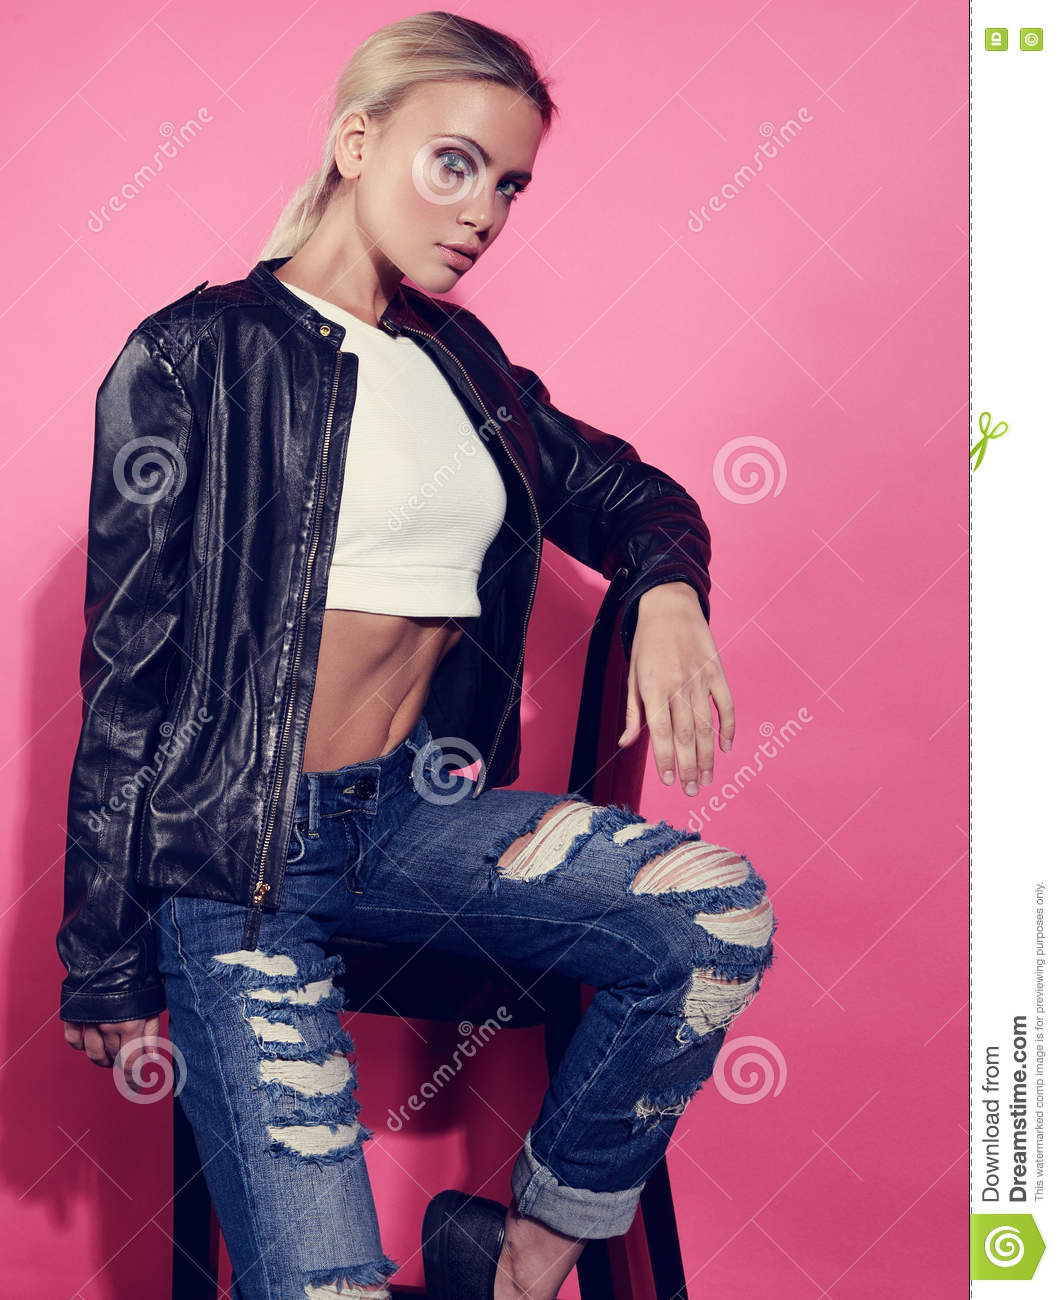 Beautiful Blond Young Model Posing In Black Leather Jacket